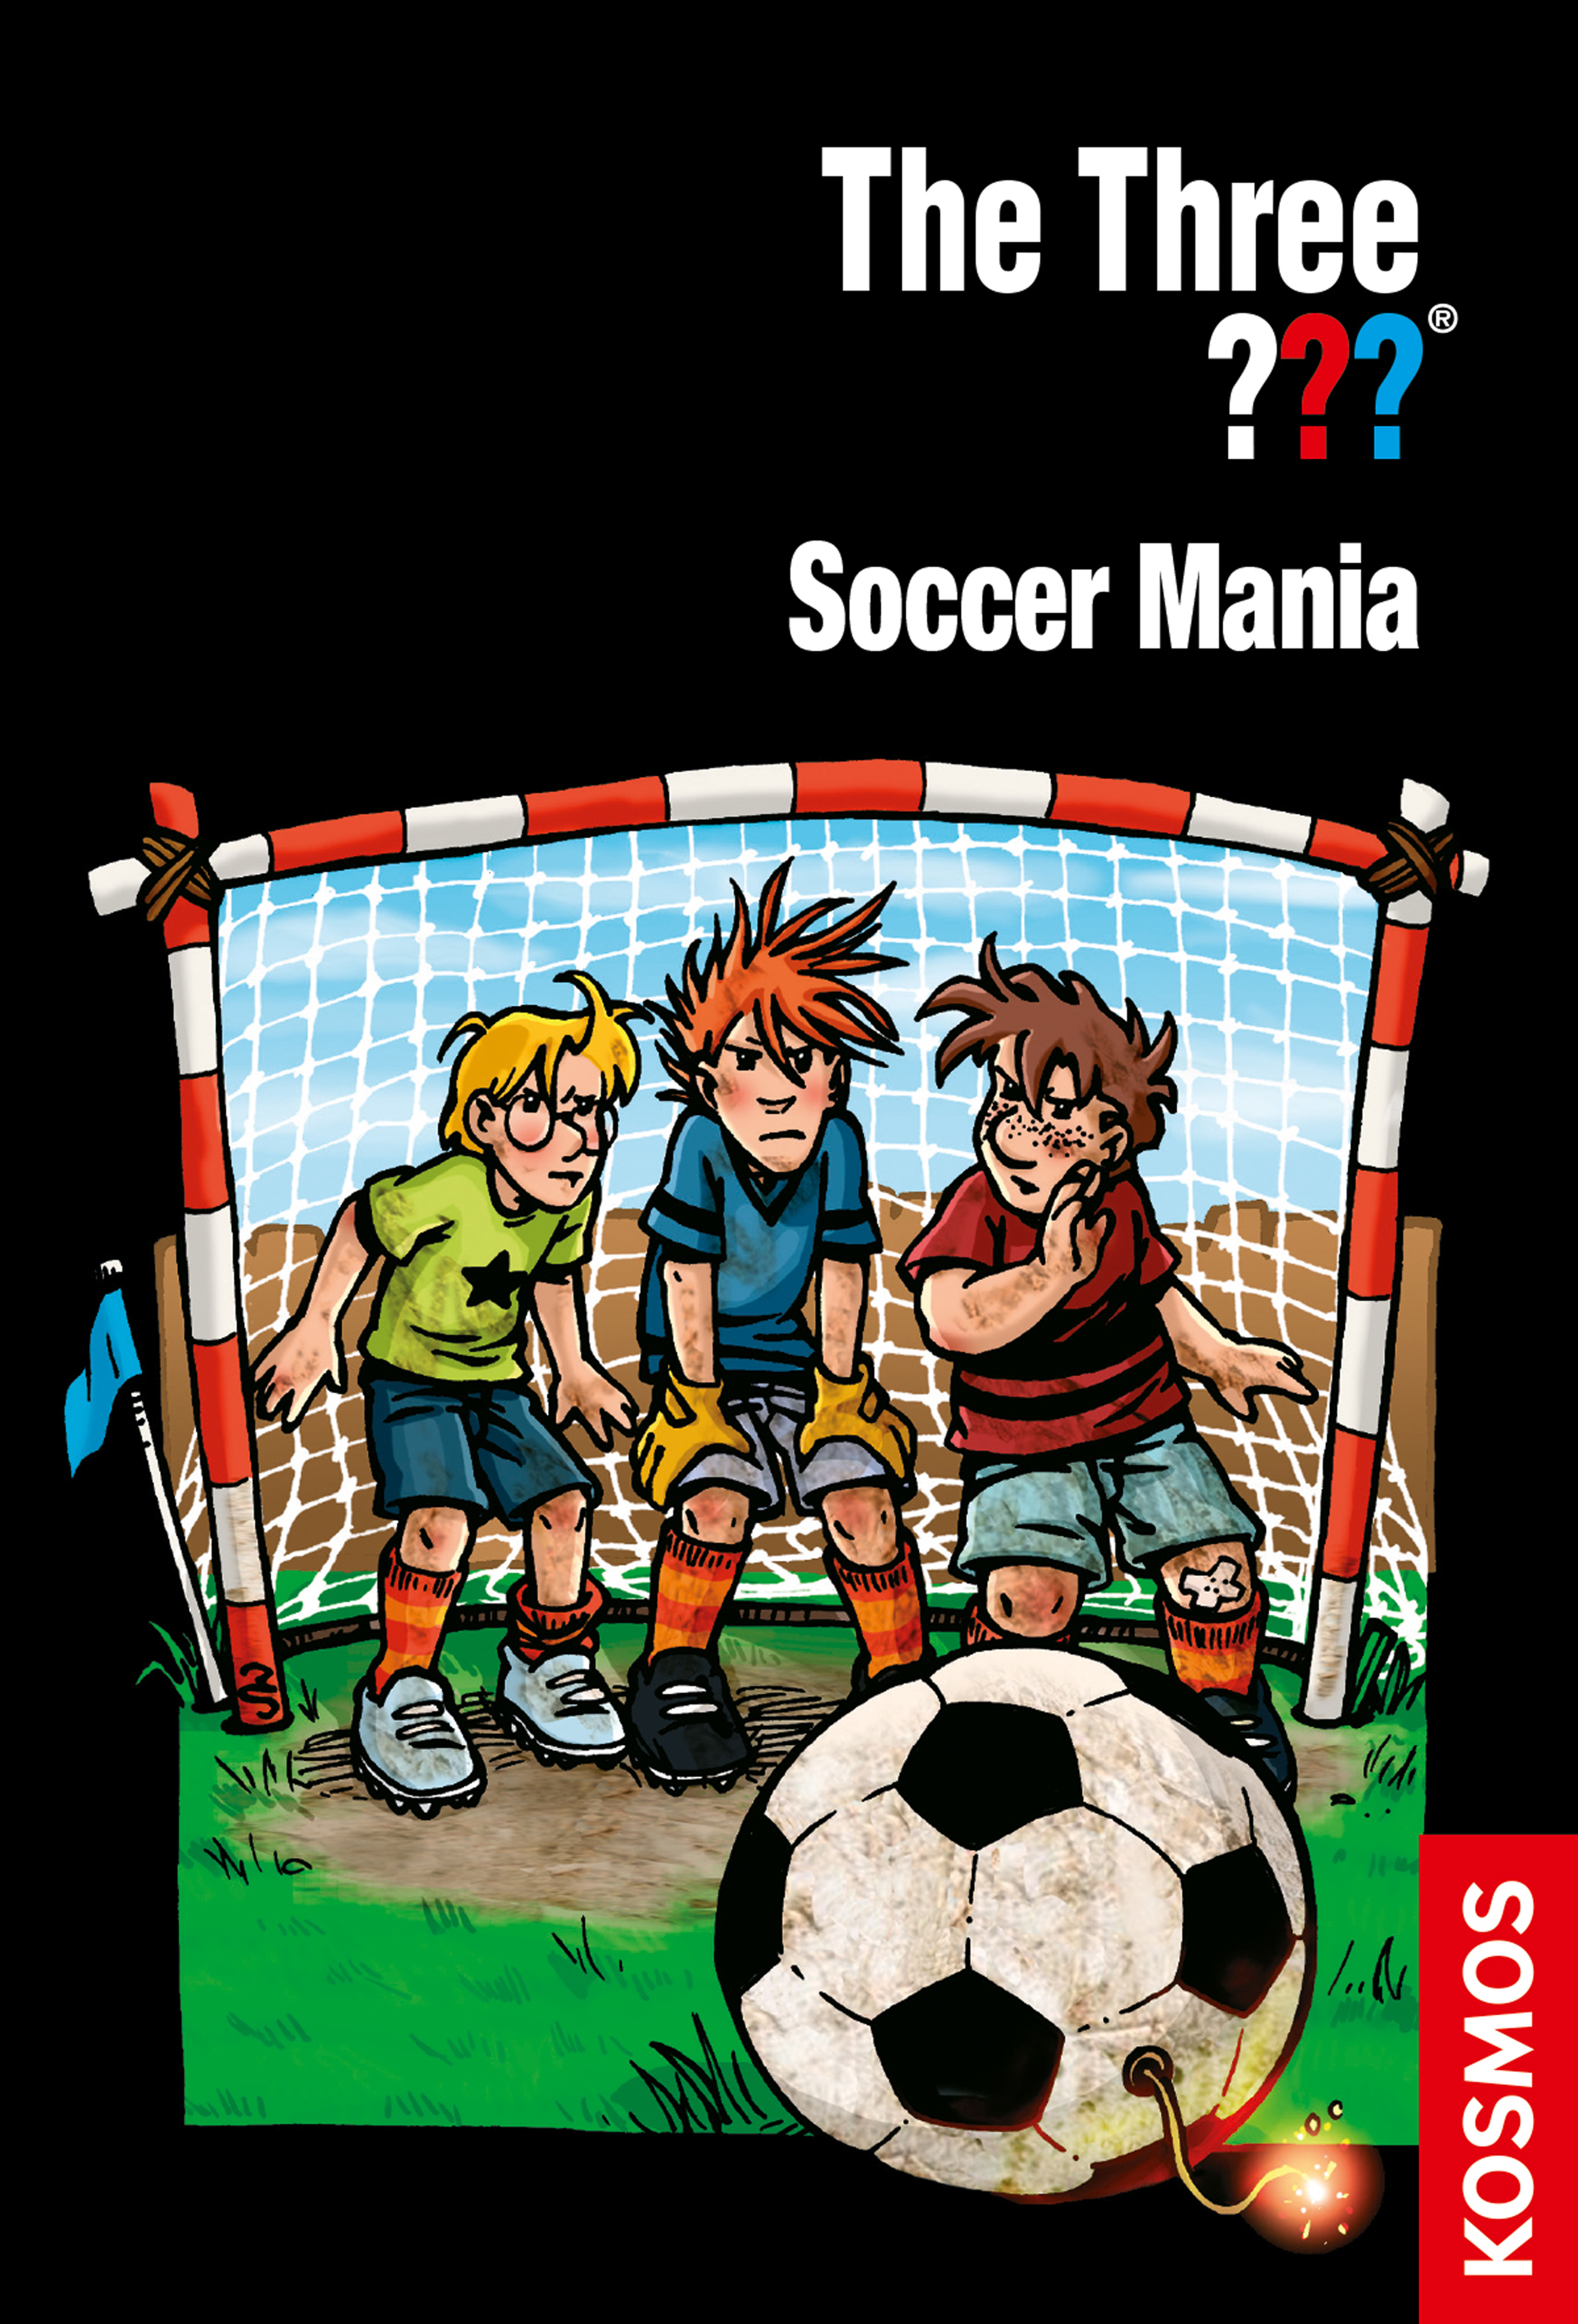 Die - The Three ???, Soccer Mania